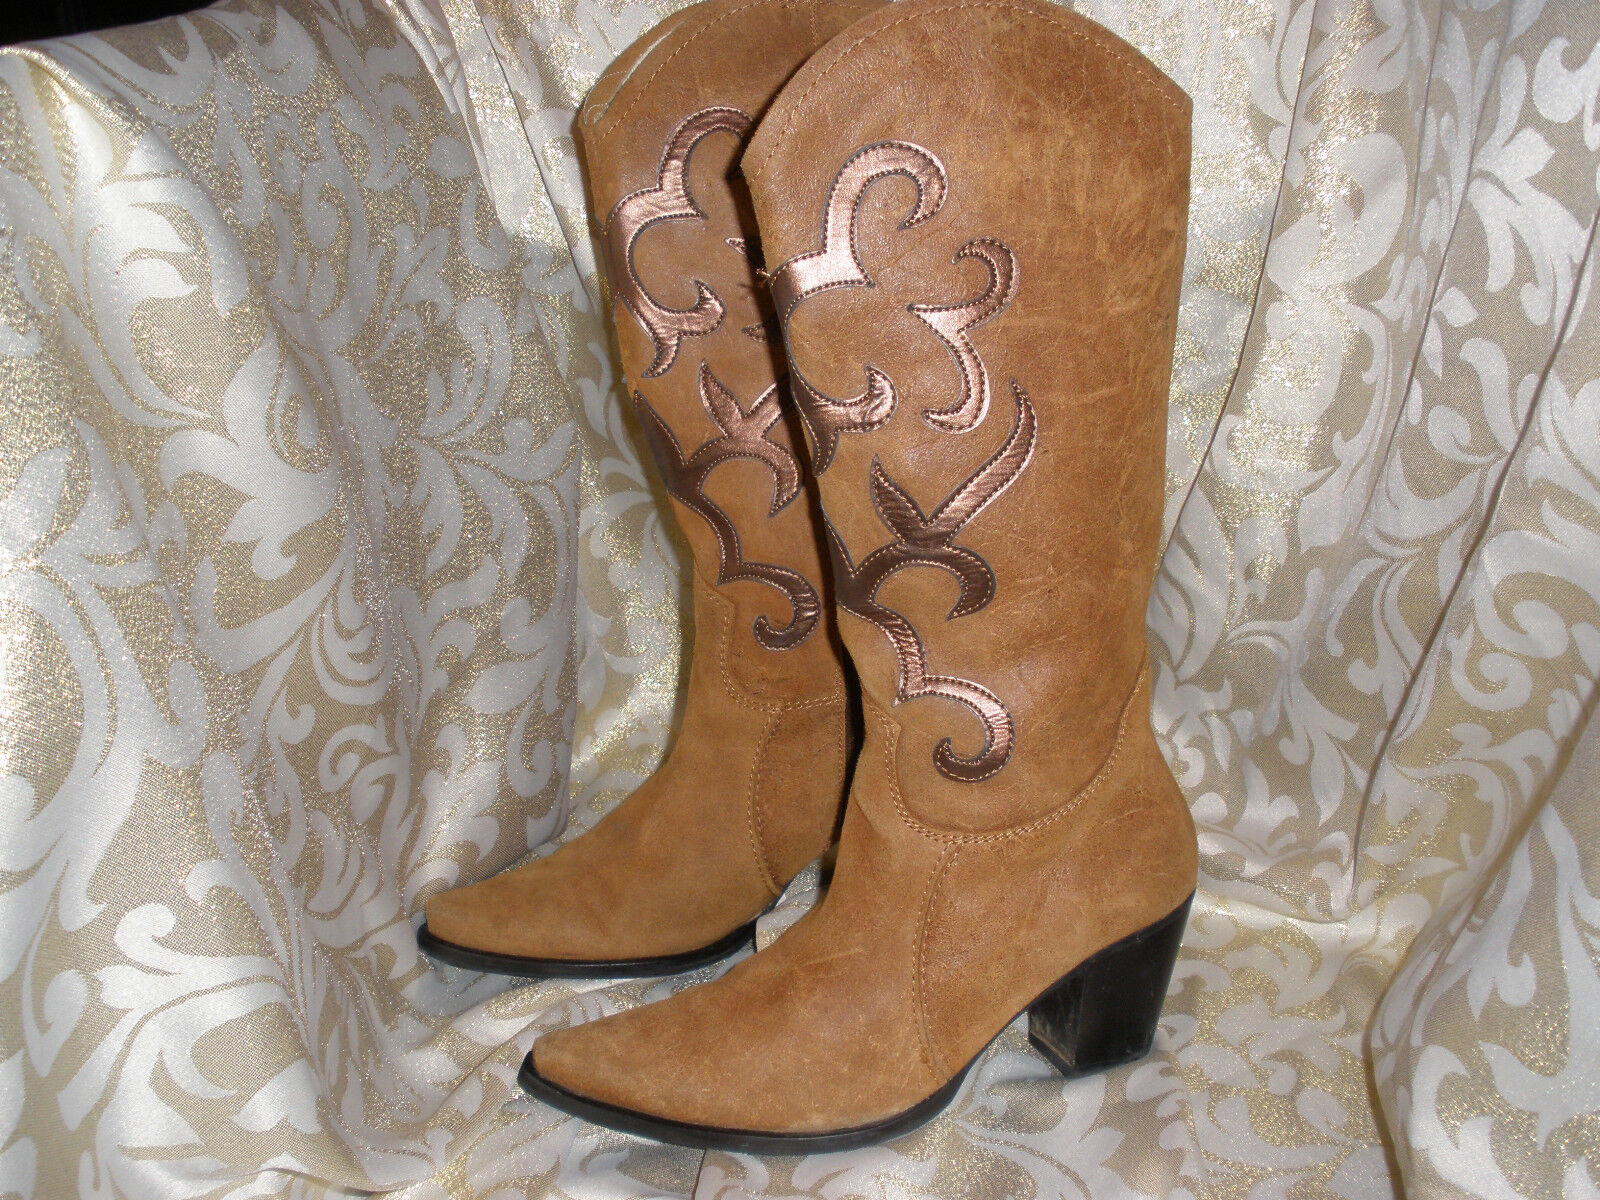 Nine West marrón   Bronce occidental de cuero BIKER botas Alto Talle 35 UE Talle 5 Us